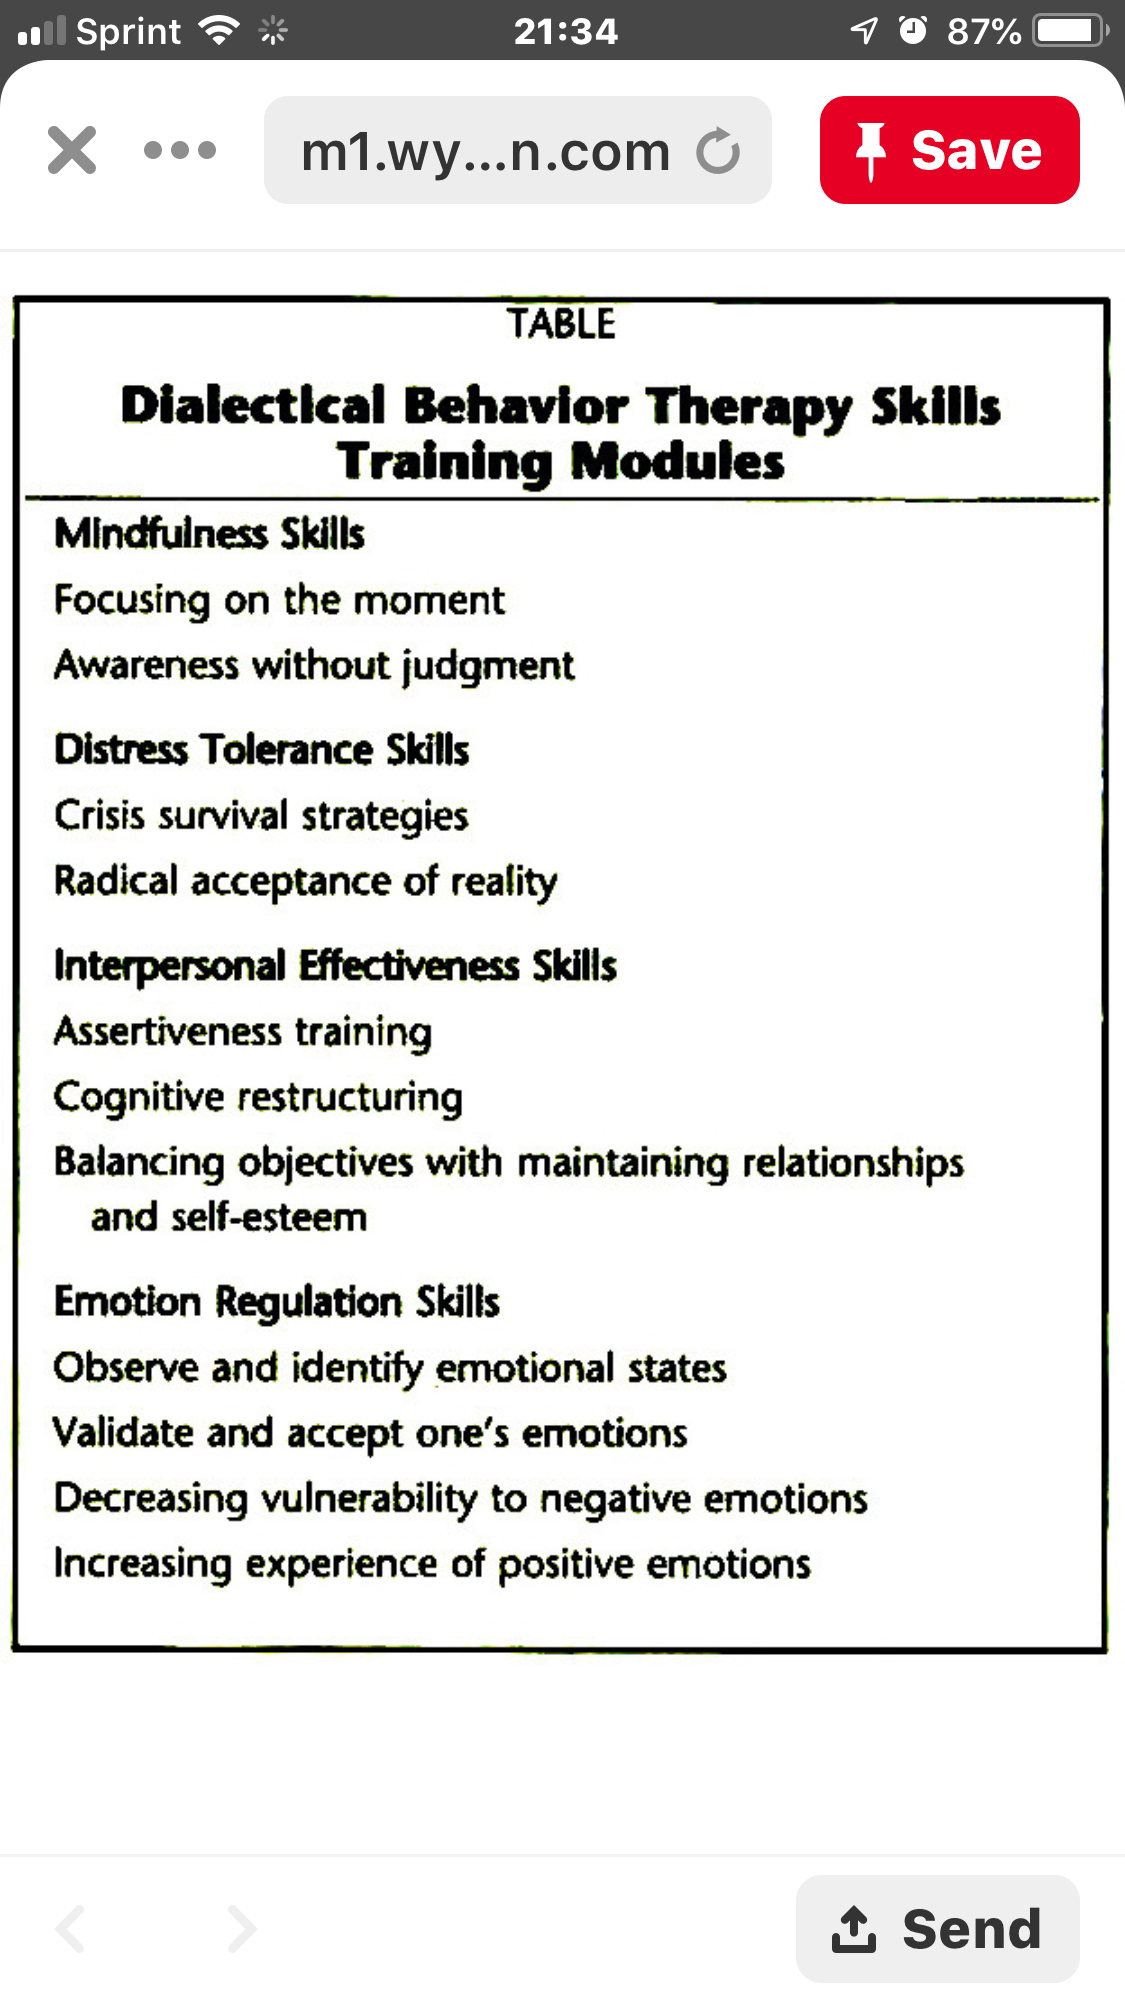 Pin By Shelley N On My Calling Distress Tolerance Skills Dialectical Behavior Therapy Interpersonal Effectiveness